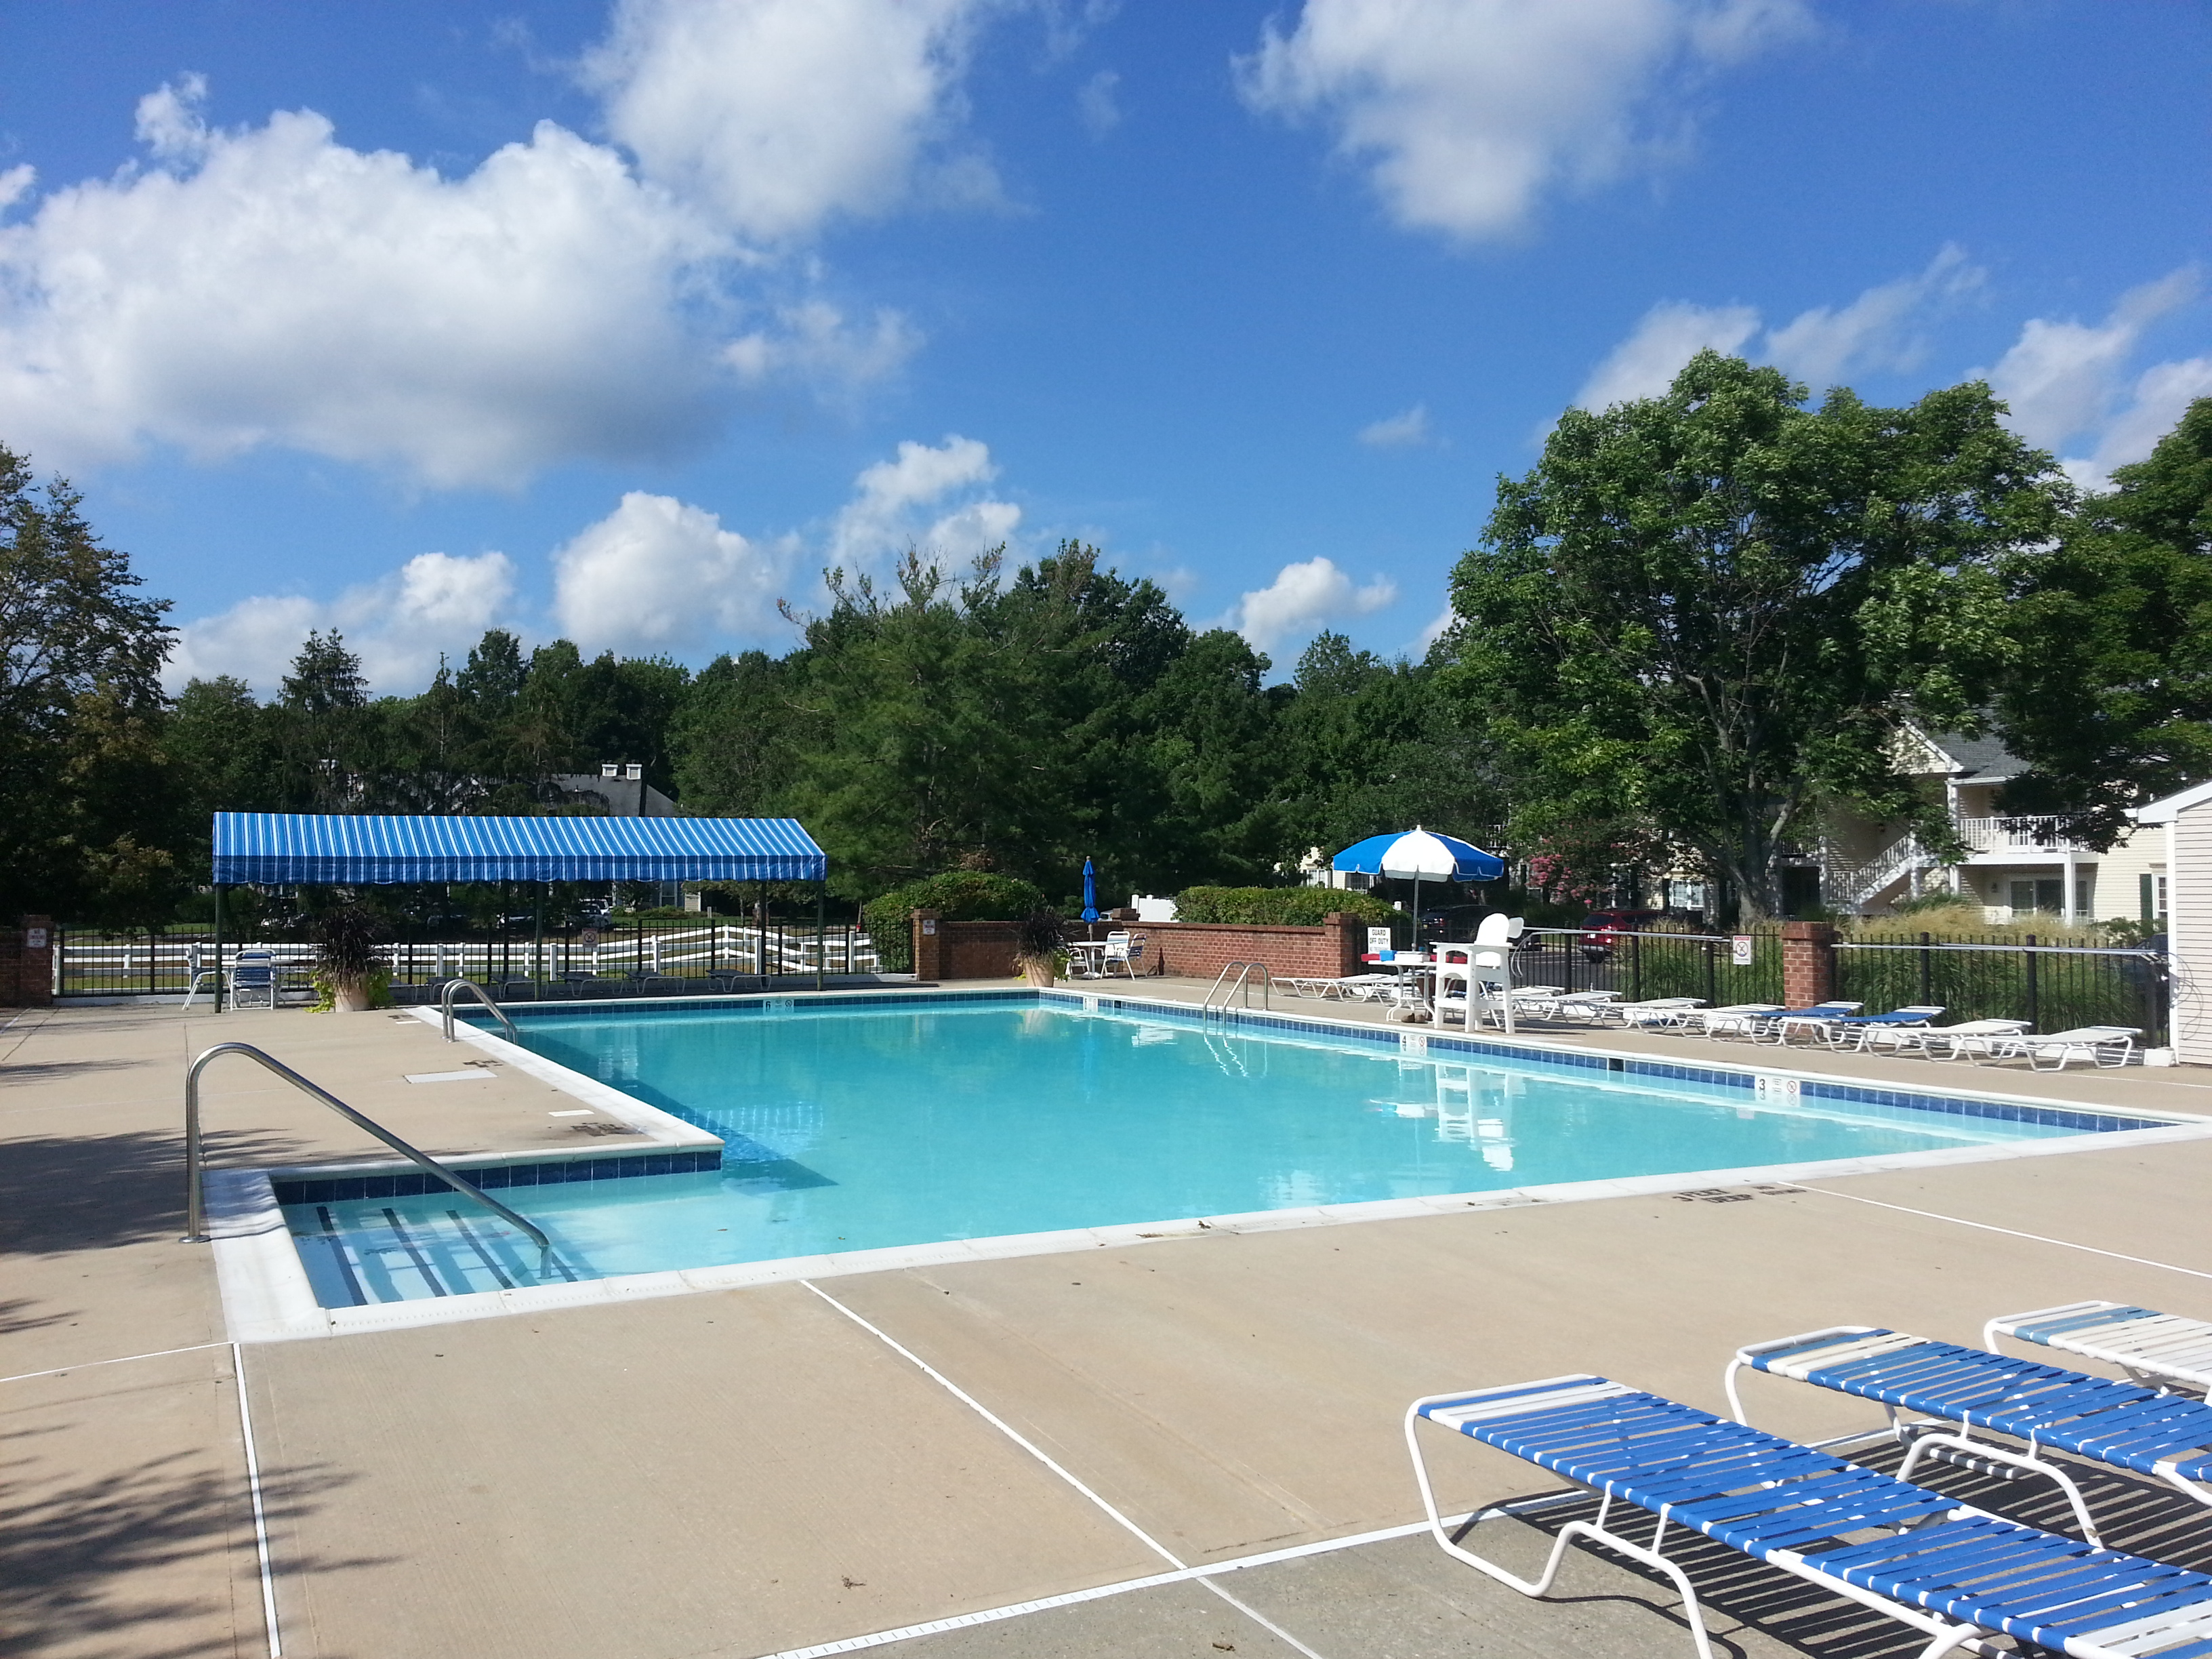 Among the amenities at Society Hill in Tinton Falls is the beautiful community pool pictured here.